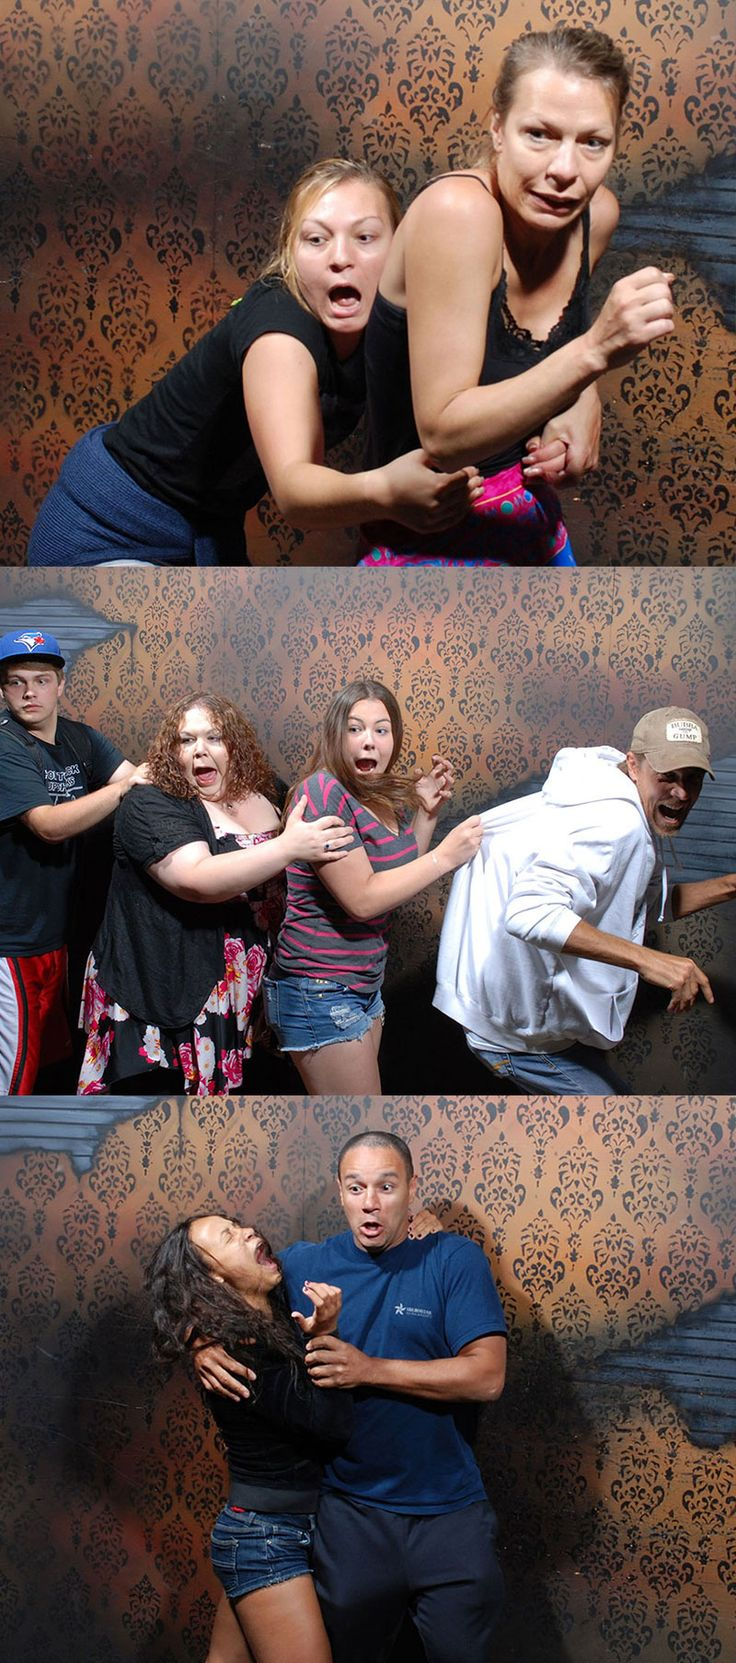 50 hilariously ridiculous haunted house reactions - Visit Our Fear Factory And You Will Get Your Very Own Hilarious Embarrassing Fear Pics